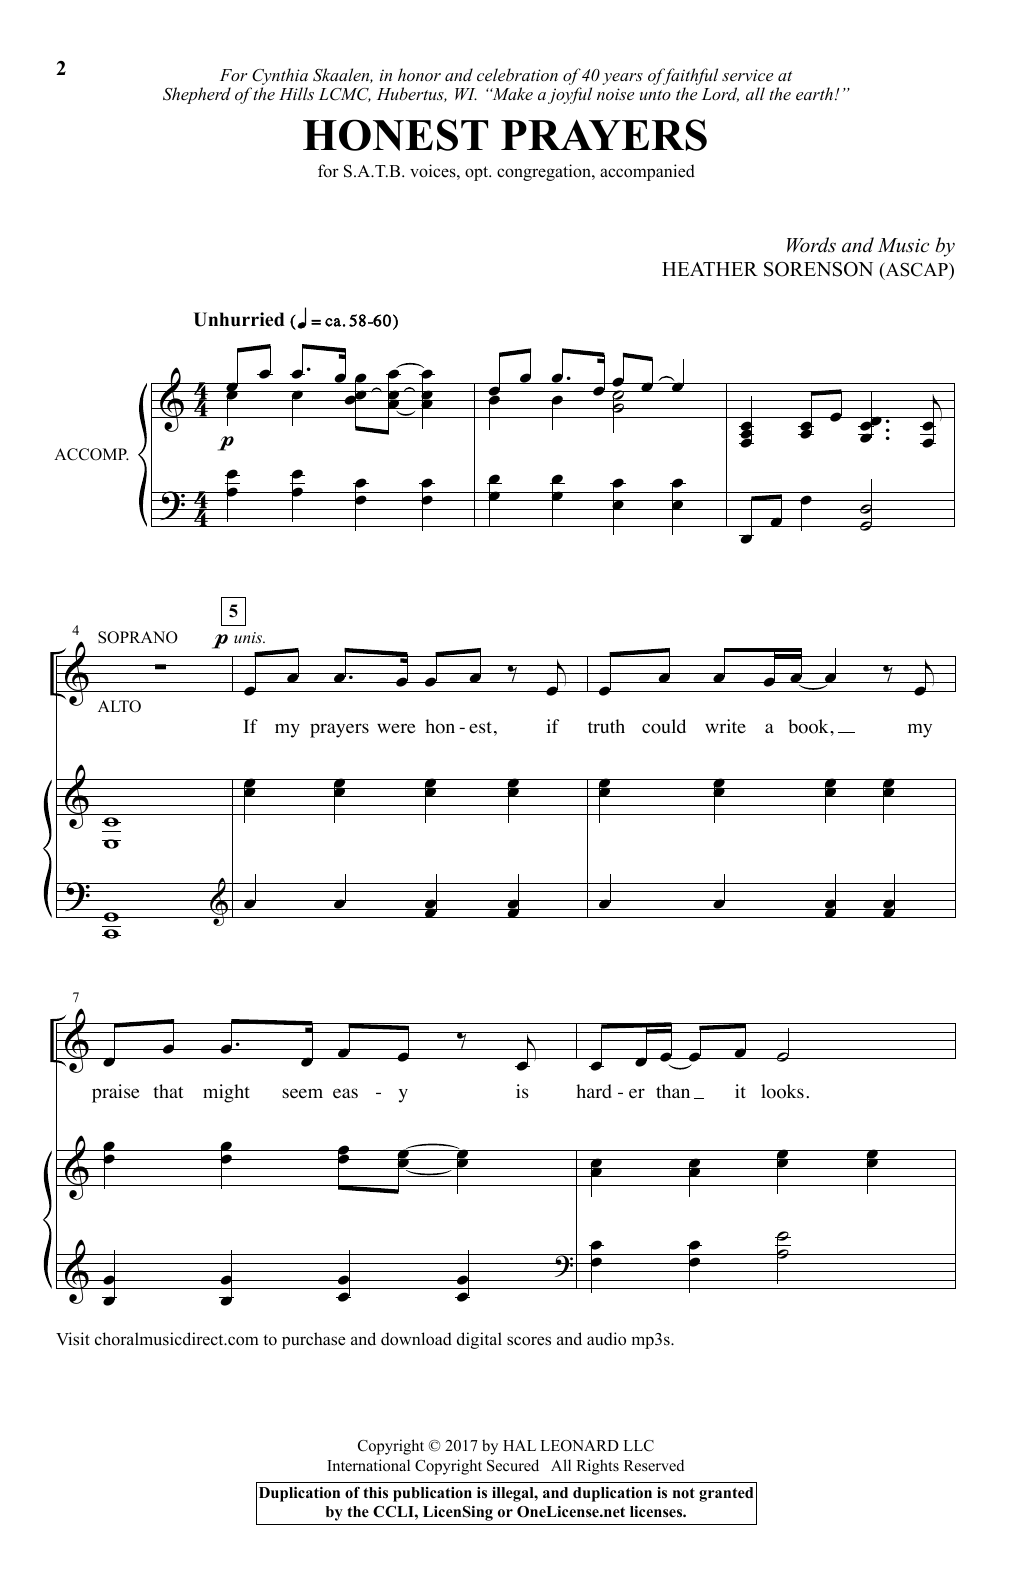 Heather Sorenson Honest Prayers sheet music notes and chords. Download Printable PDF.